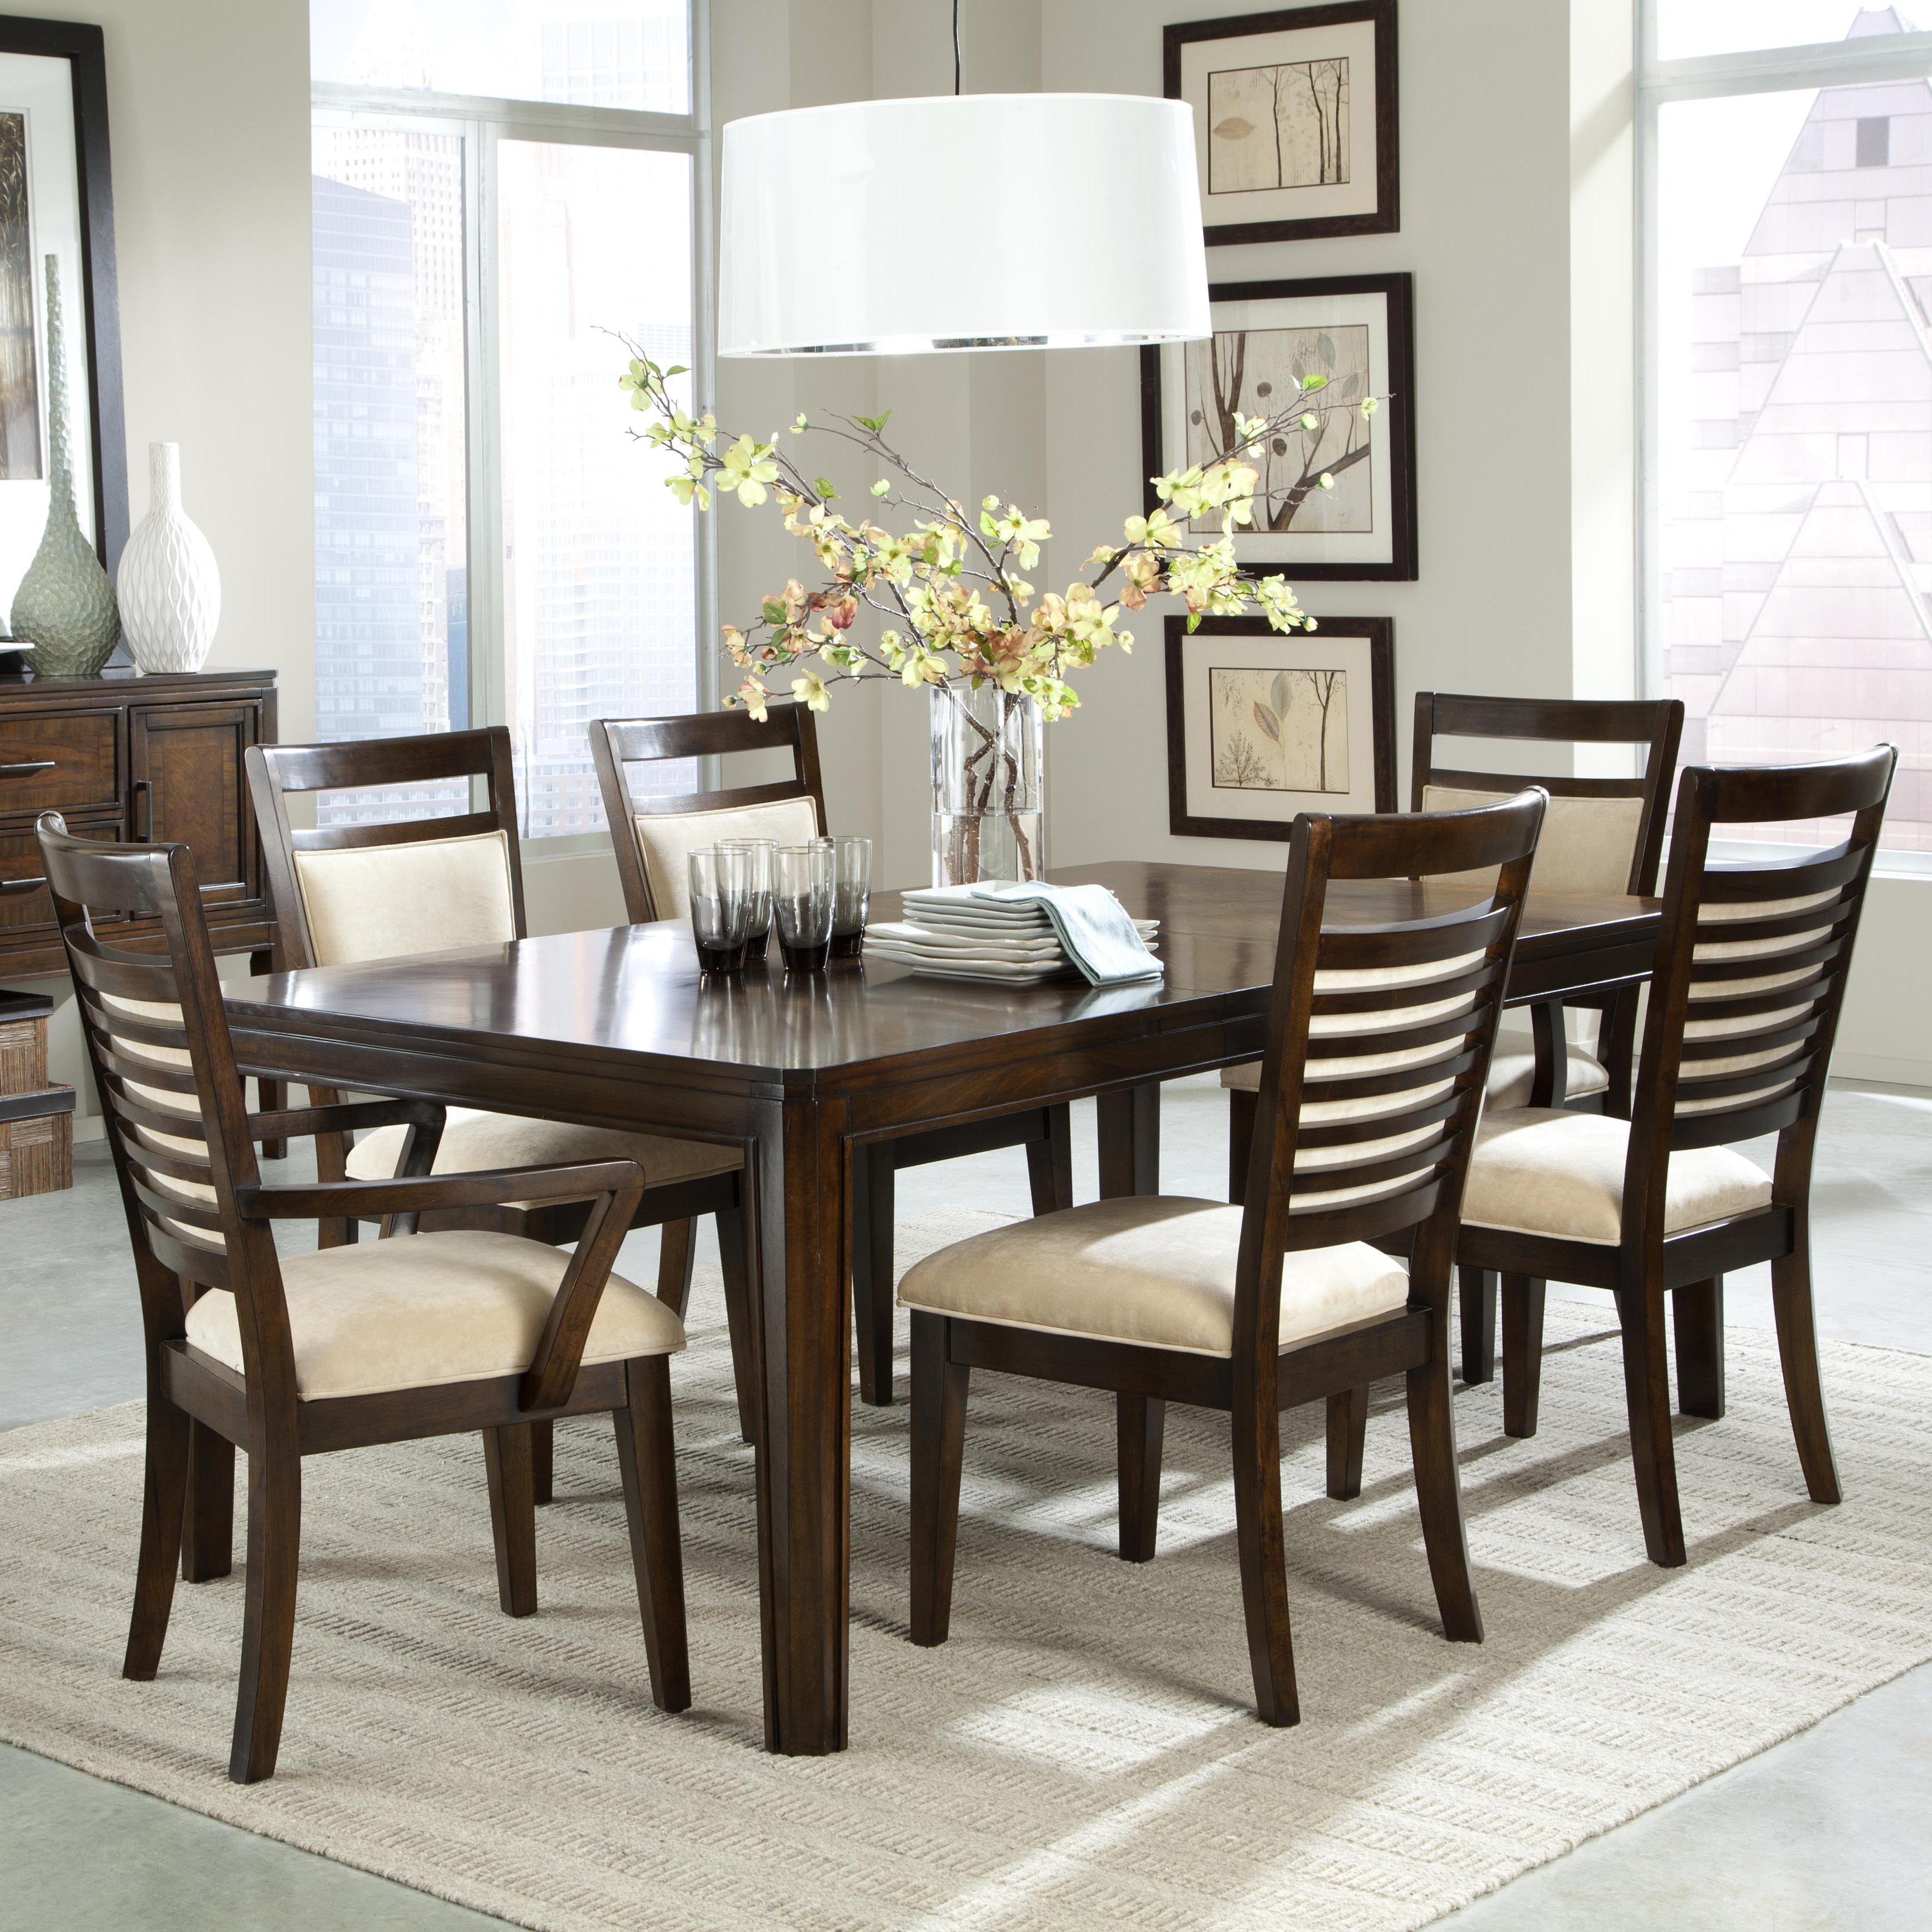 7 Piece Dining Table Set and Upholstered Chairs with  : products2Fstandardfurniture2Fcolor2Favion2017820178212B4x178242B2x17825 b0 from wolffurniture.com size 3300 x 3300 jpeg 1070kB